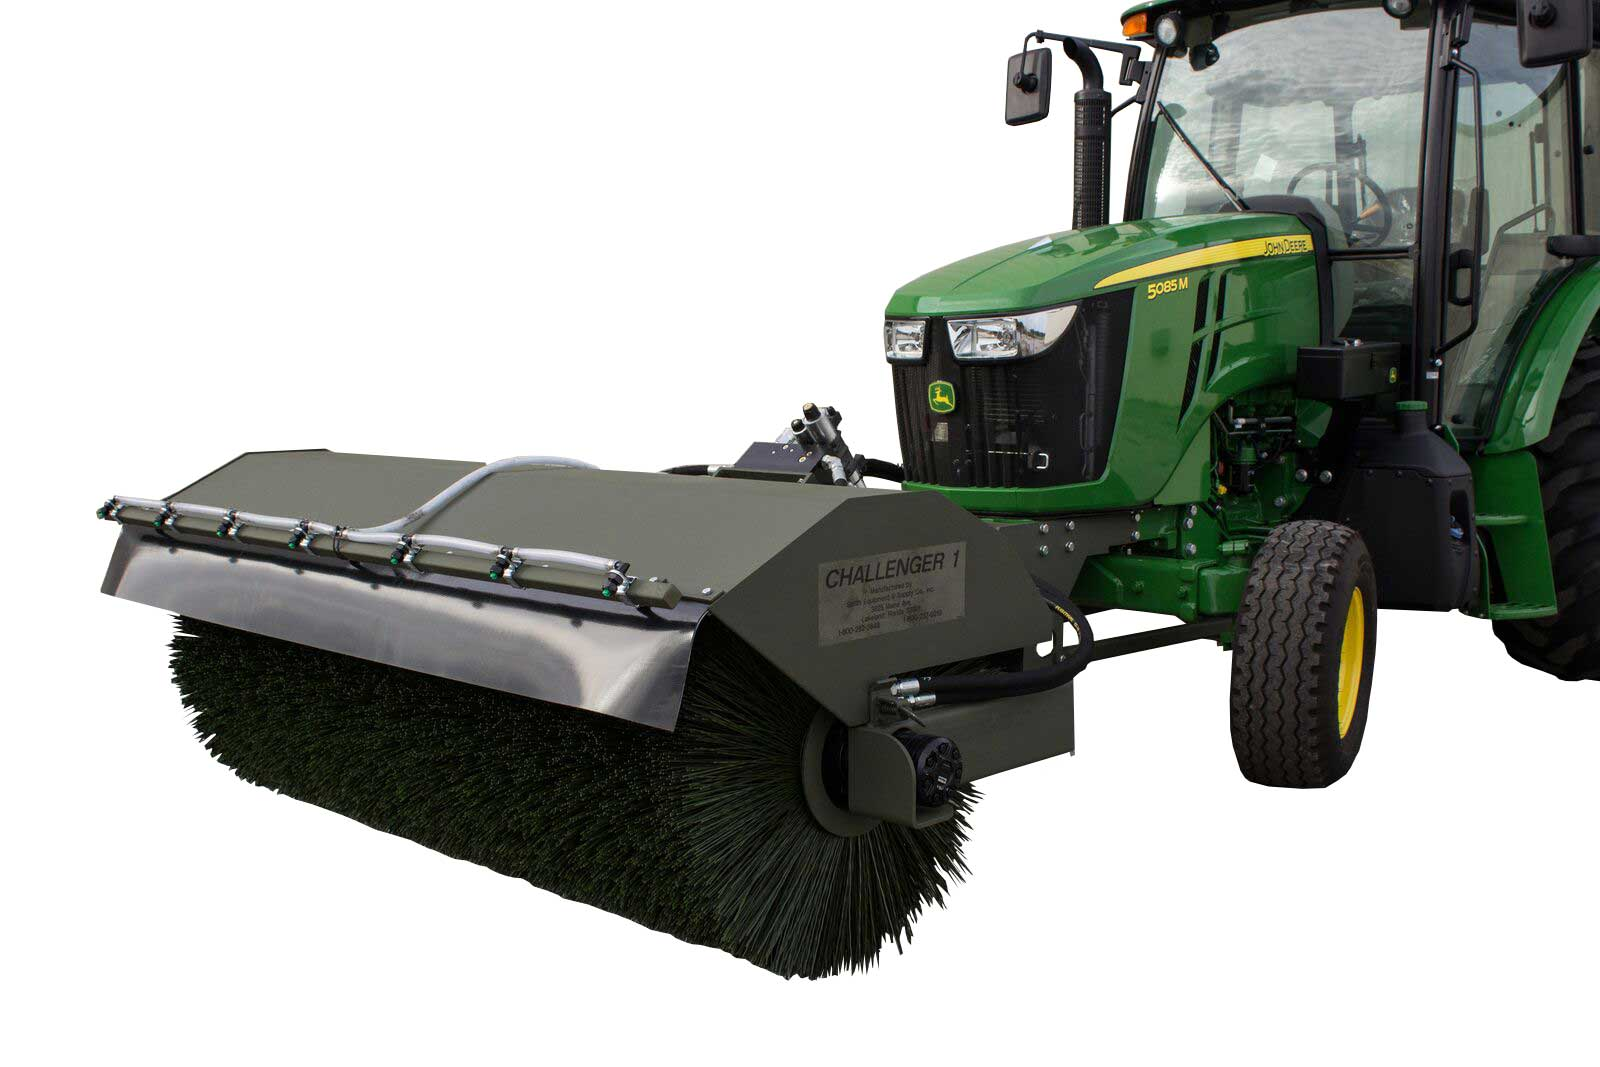 Tractor Implements And Attachments : Tractor attacments and skid steer solutions smith equipment